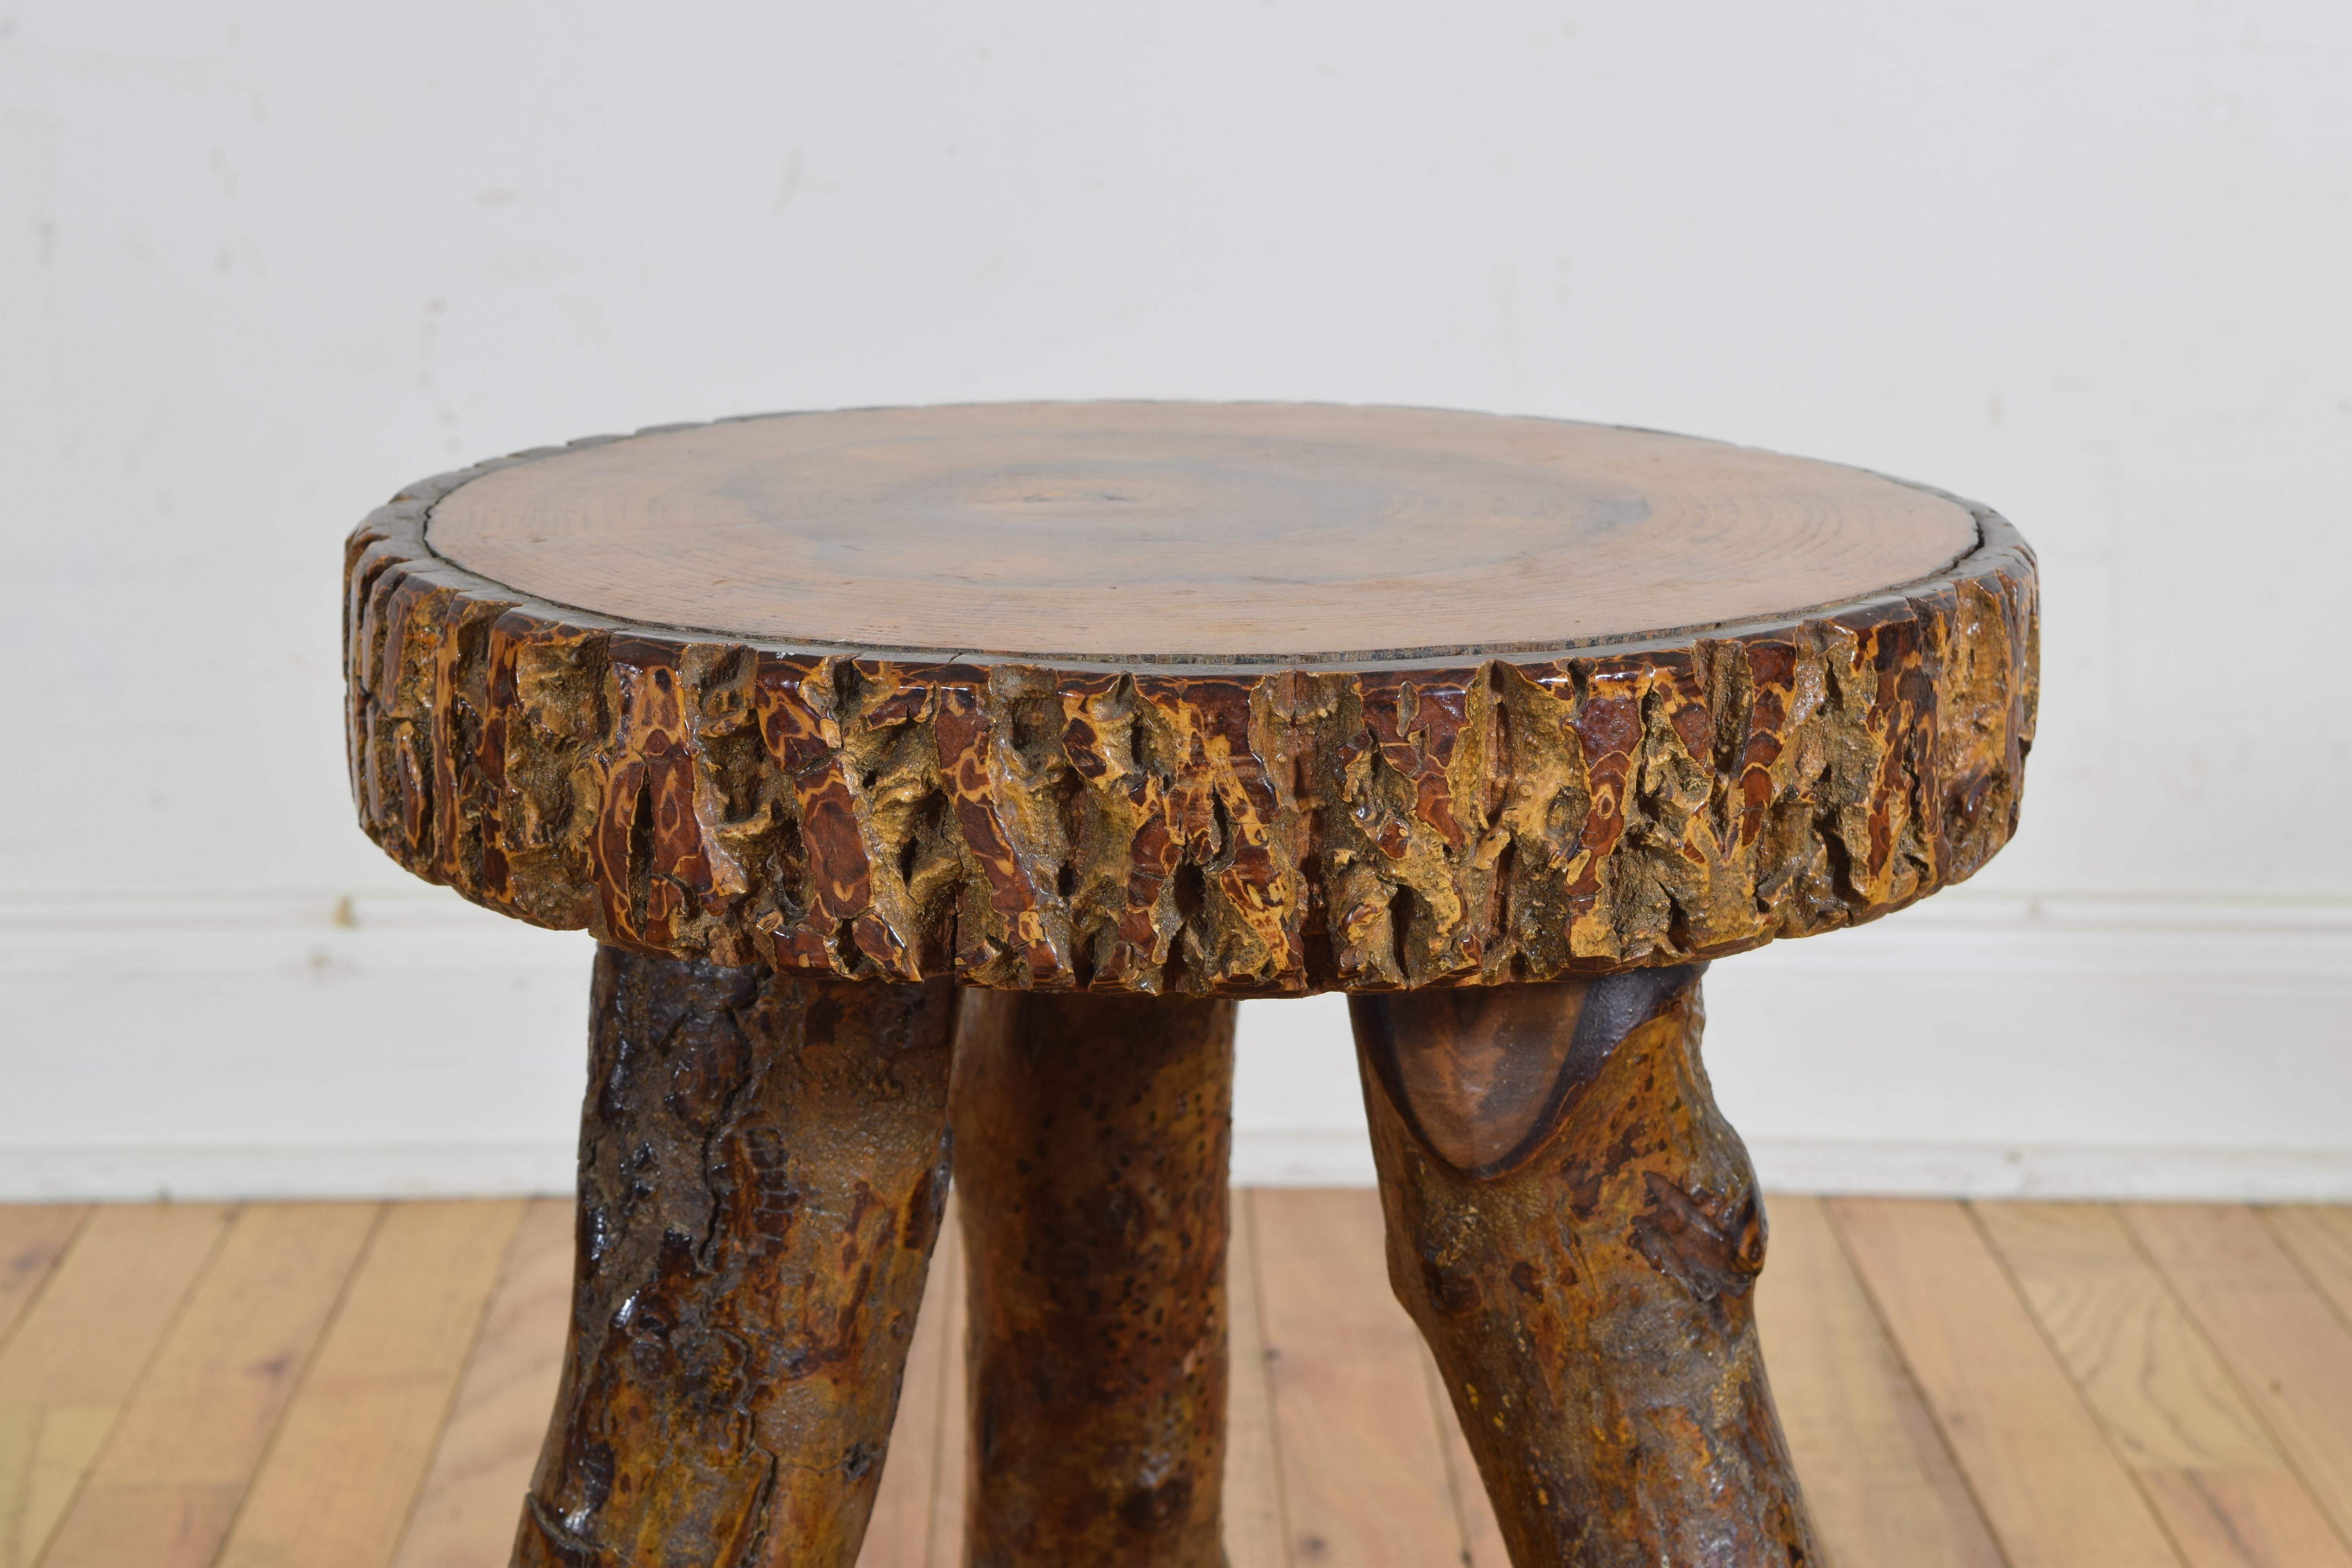 Merveilleux Continental Rustic Side Table, Top Cross Section Of Timber, 20th Century In  Excellent Condition